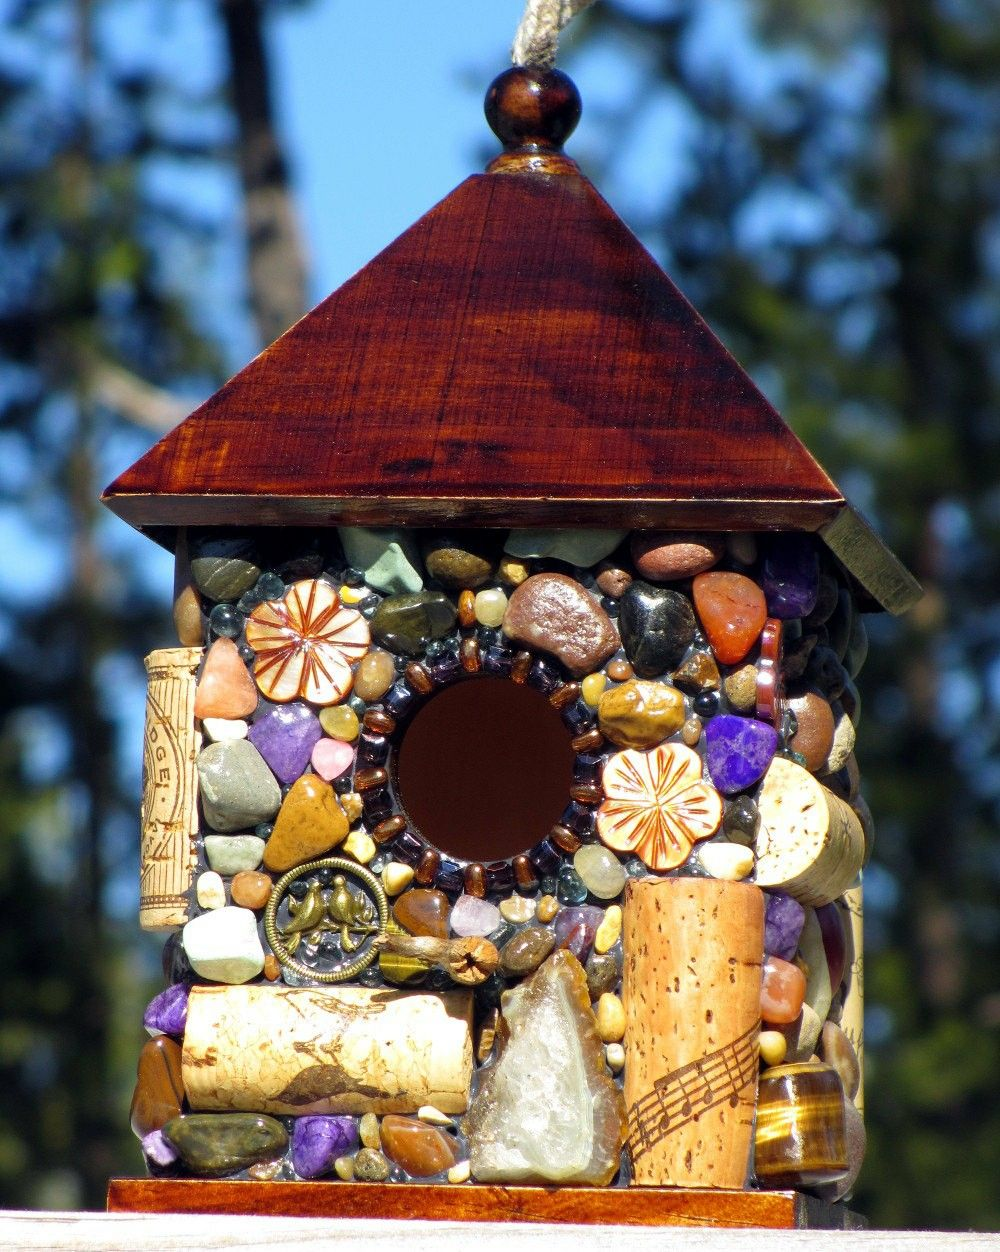 Thanks For The Kind Words This Is Really Well Made I Love The Extensive Variety Of The Decorations Bird Houses Wine Cork Birdhouse Garden Accessories